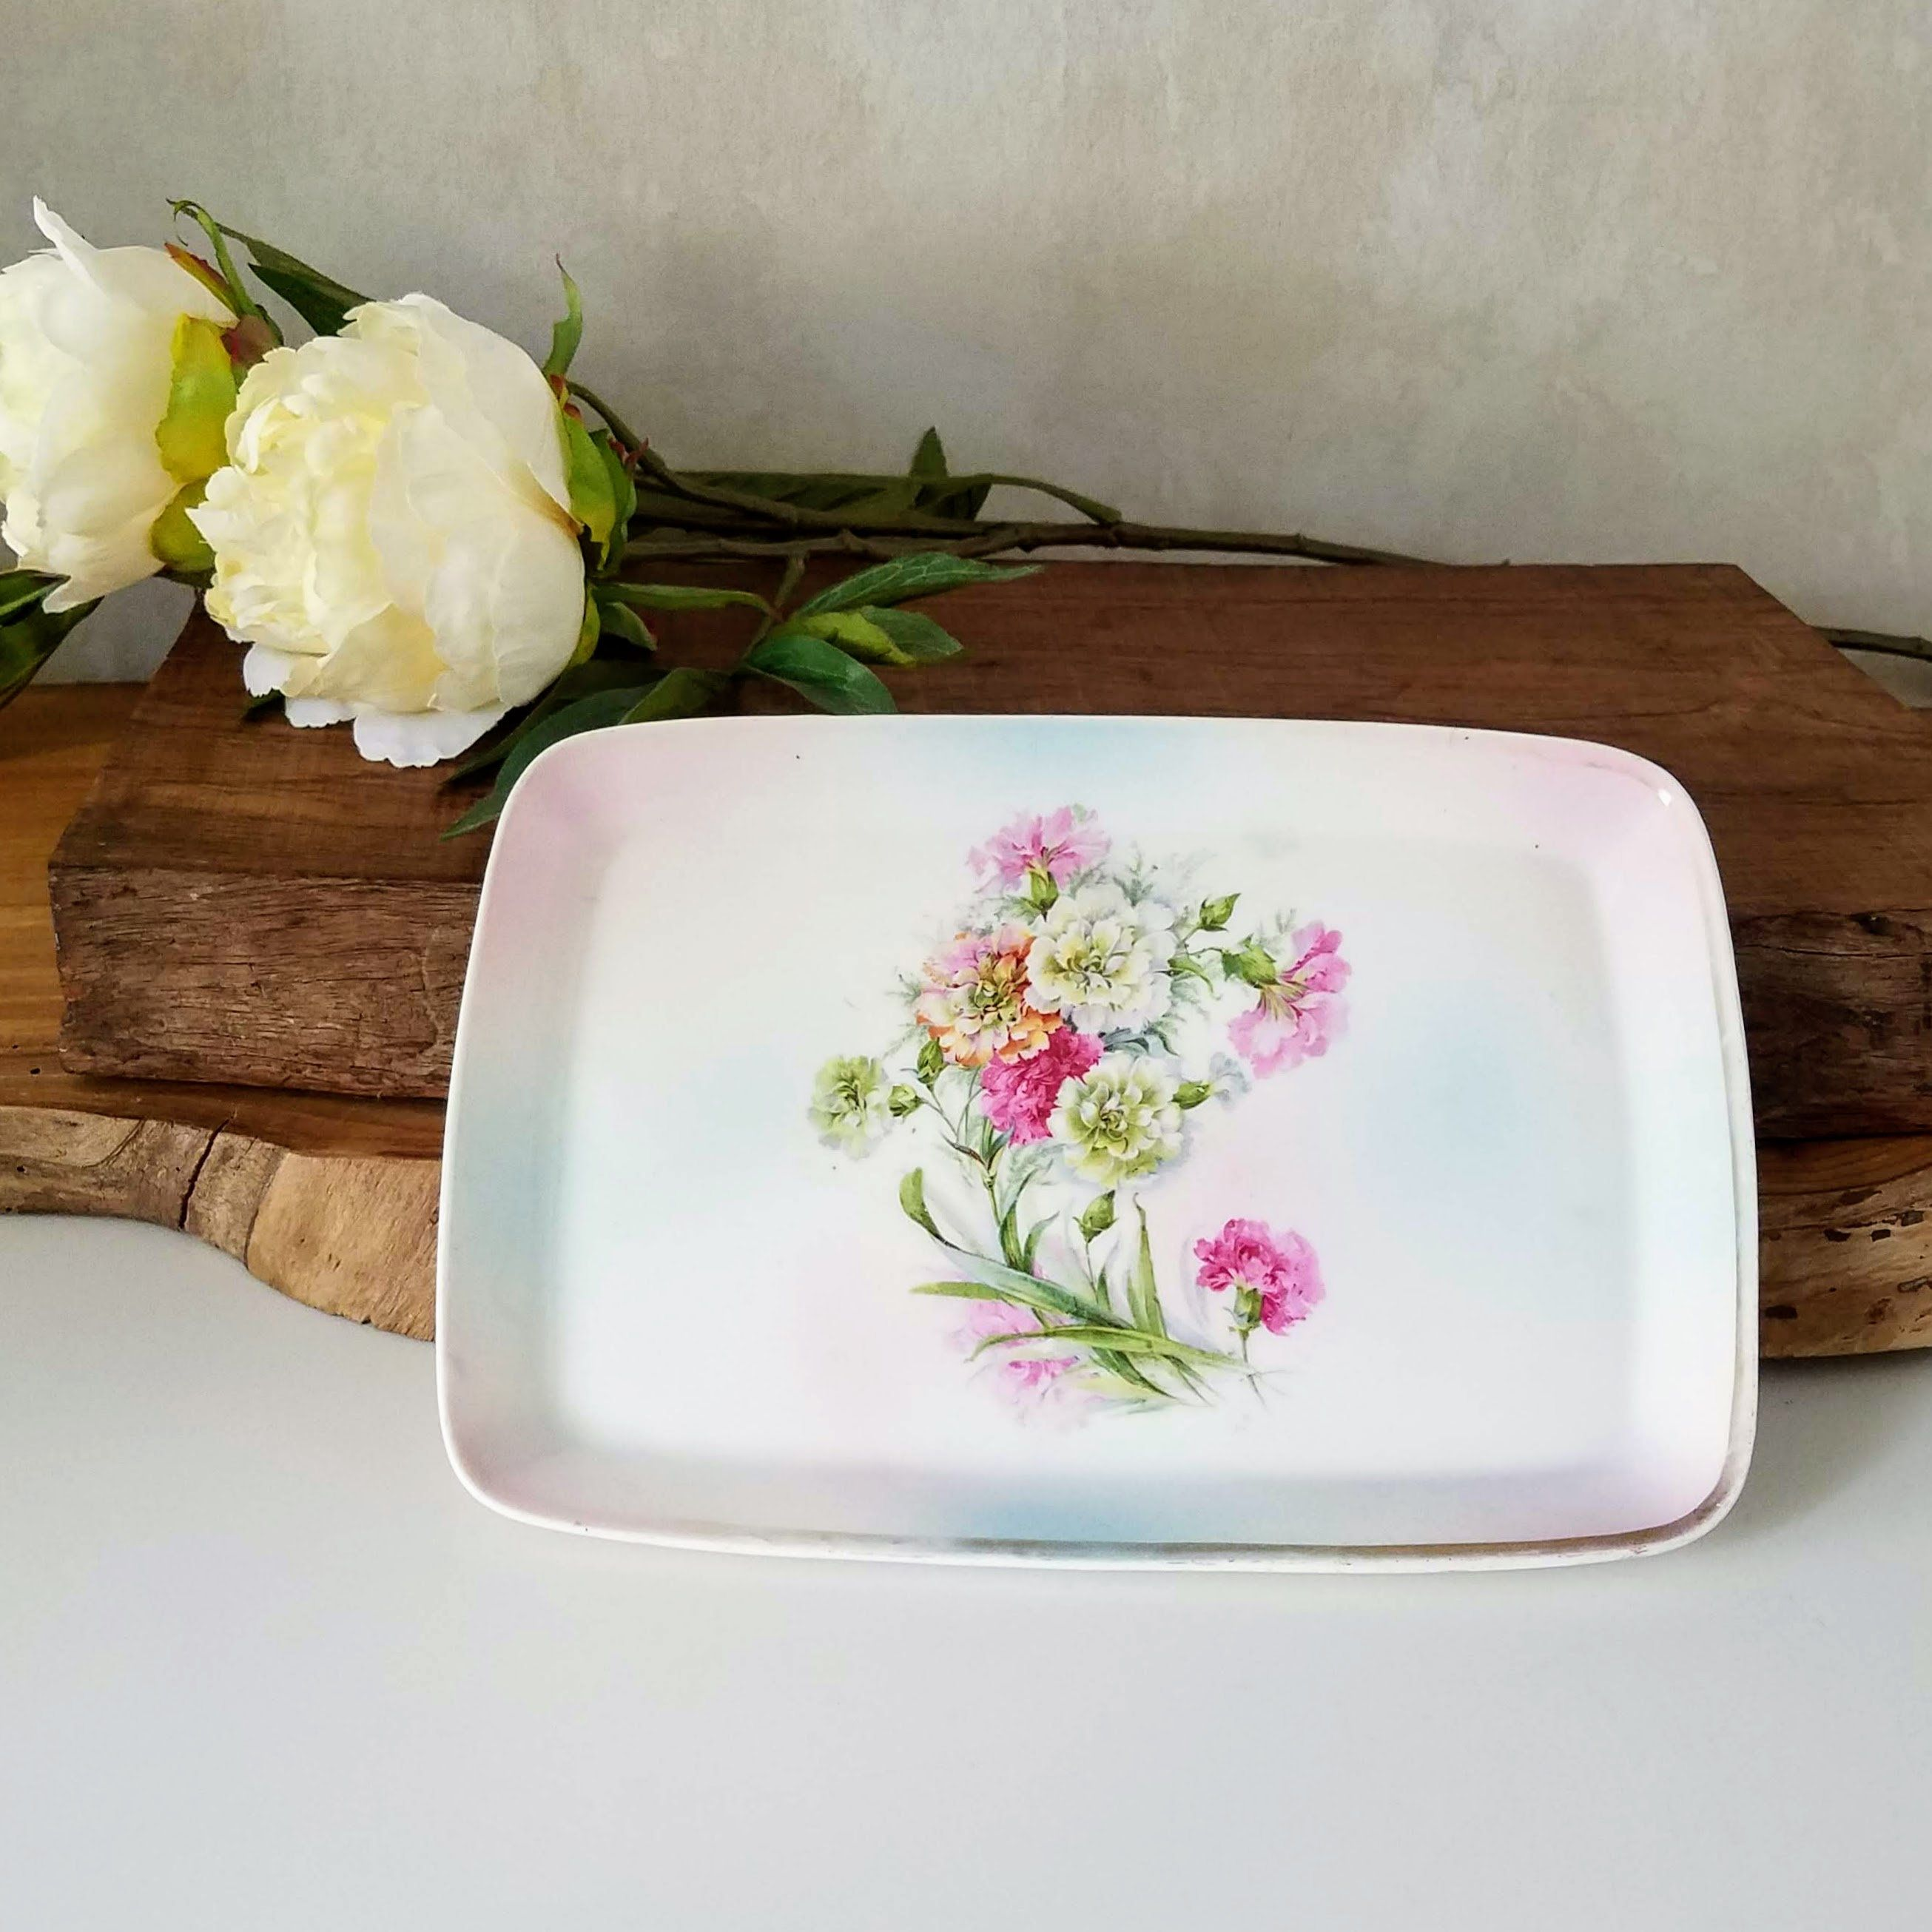 Hand Painted Blenheim China Dresser Tray From Germany